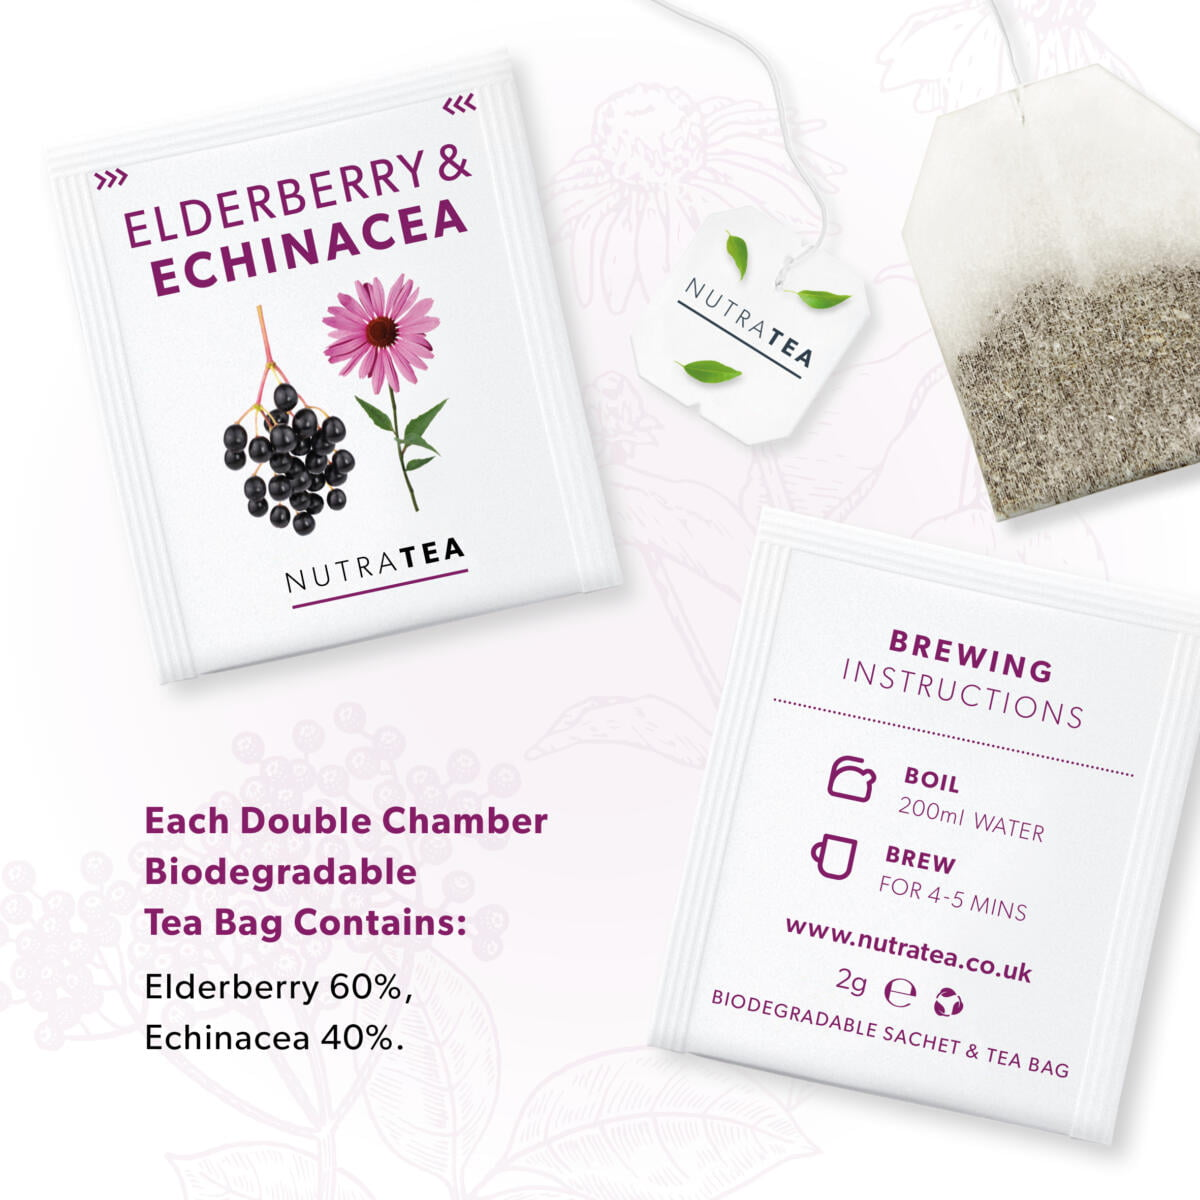 ELDERBERRY & ECHINACEA_SUPPORT_PAGES5